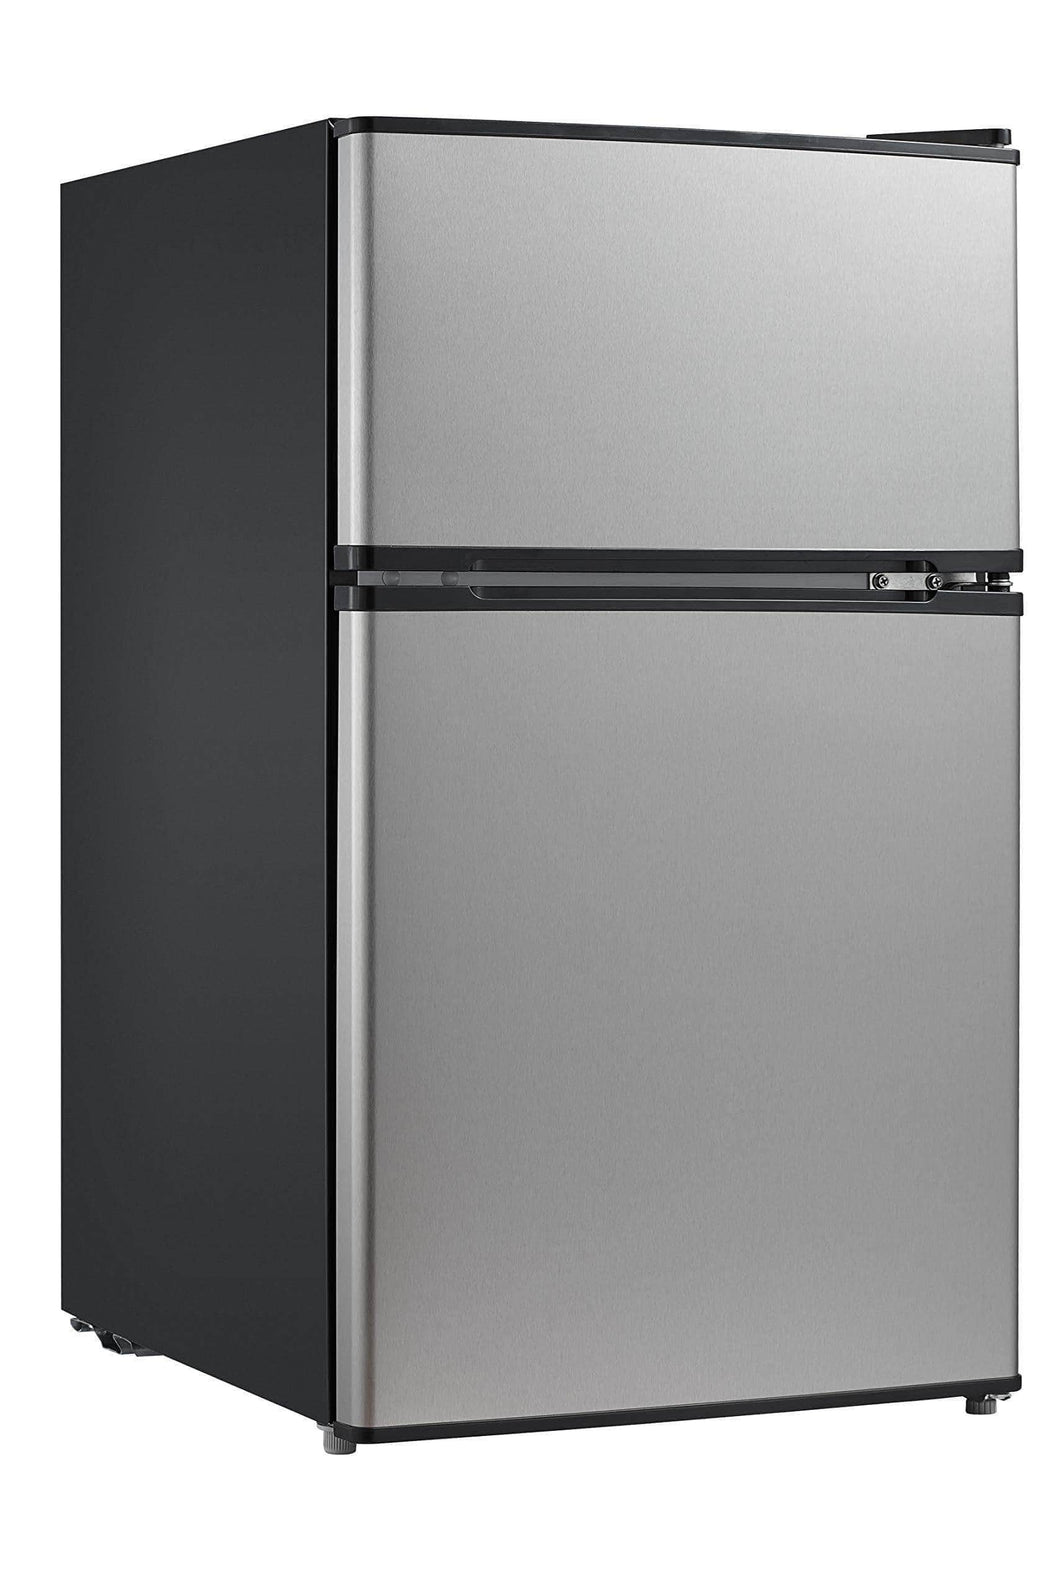 Home midea whd 113fss1 double door mini fridge with freezer for bedroom office or dorm with adjustable remove glass shelves compact refrigerator 3 1 cu ft stainless steel